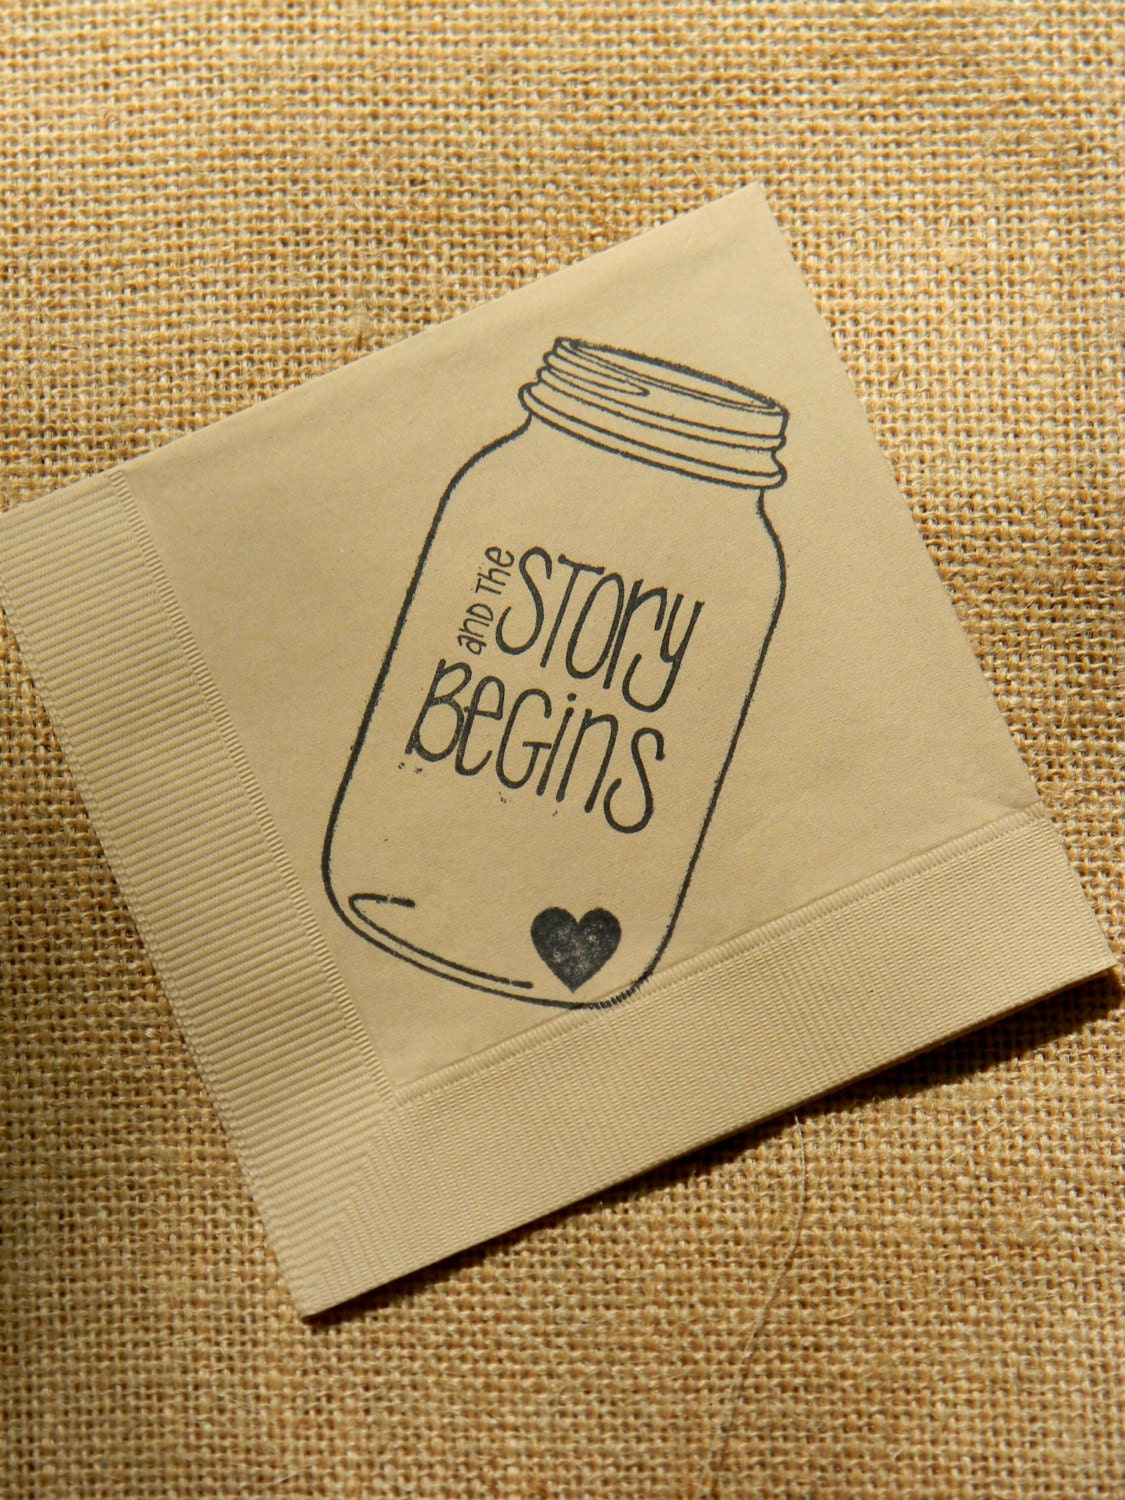 Wedding Wedding Cocktail Napkins rustic light burlap the story begins mason jar napkins wedding paper cocktail with tiny heart